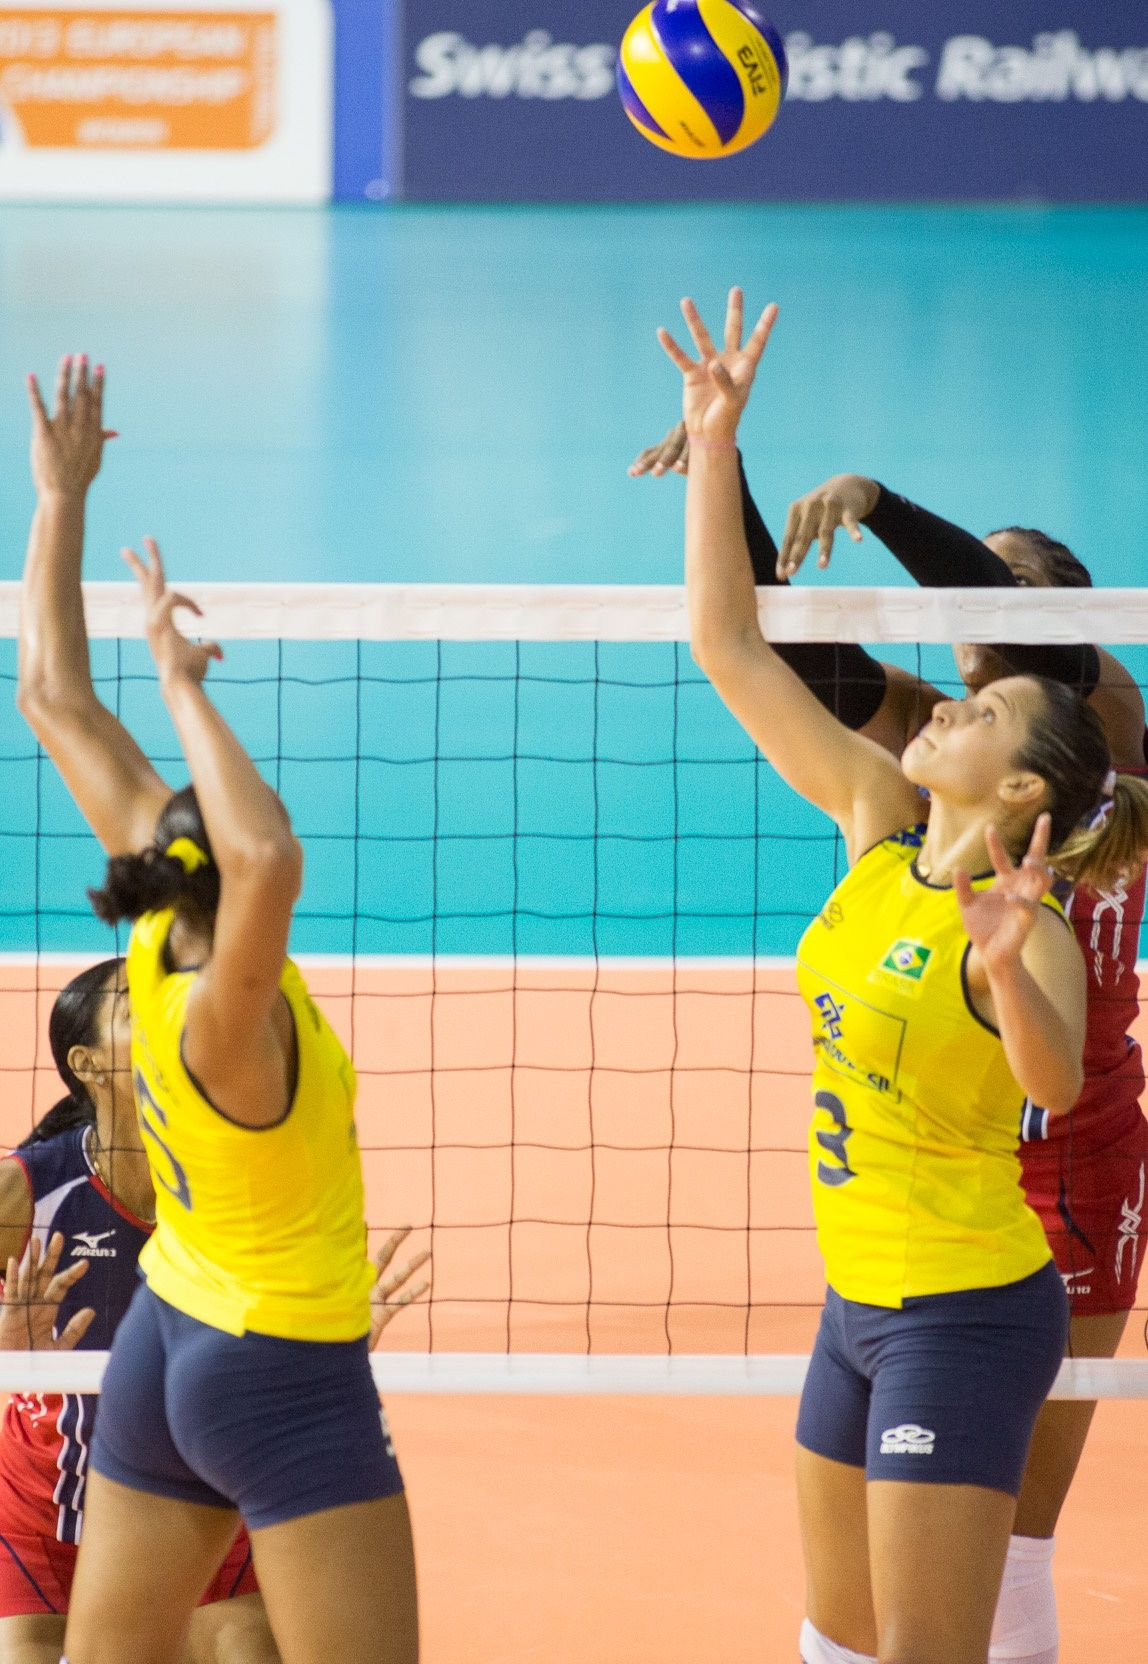 Pin By Graemeshaw On Female Volleyball Players Female Volleyball Players Women Volleyball Volleyball Players